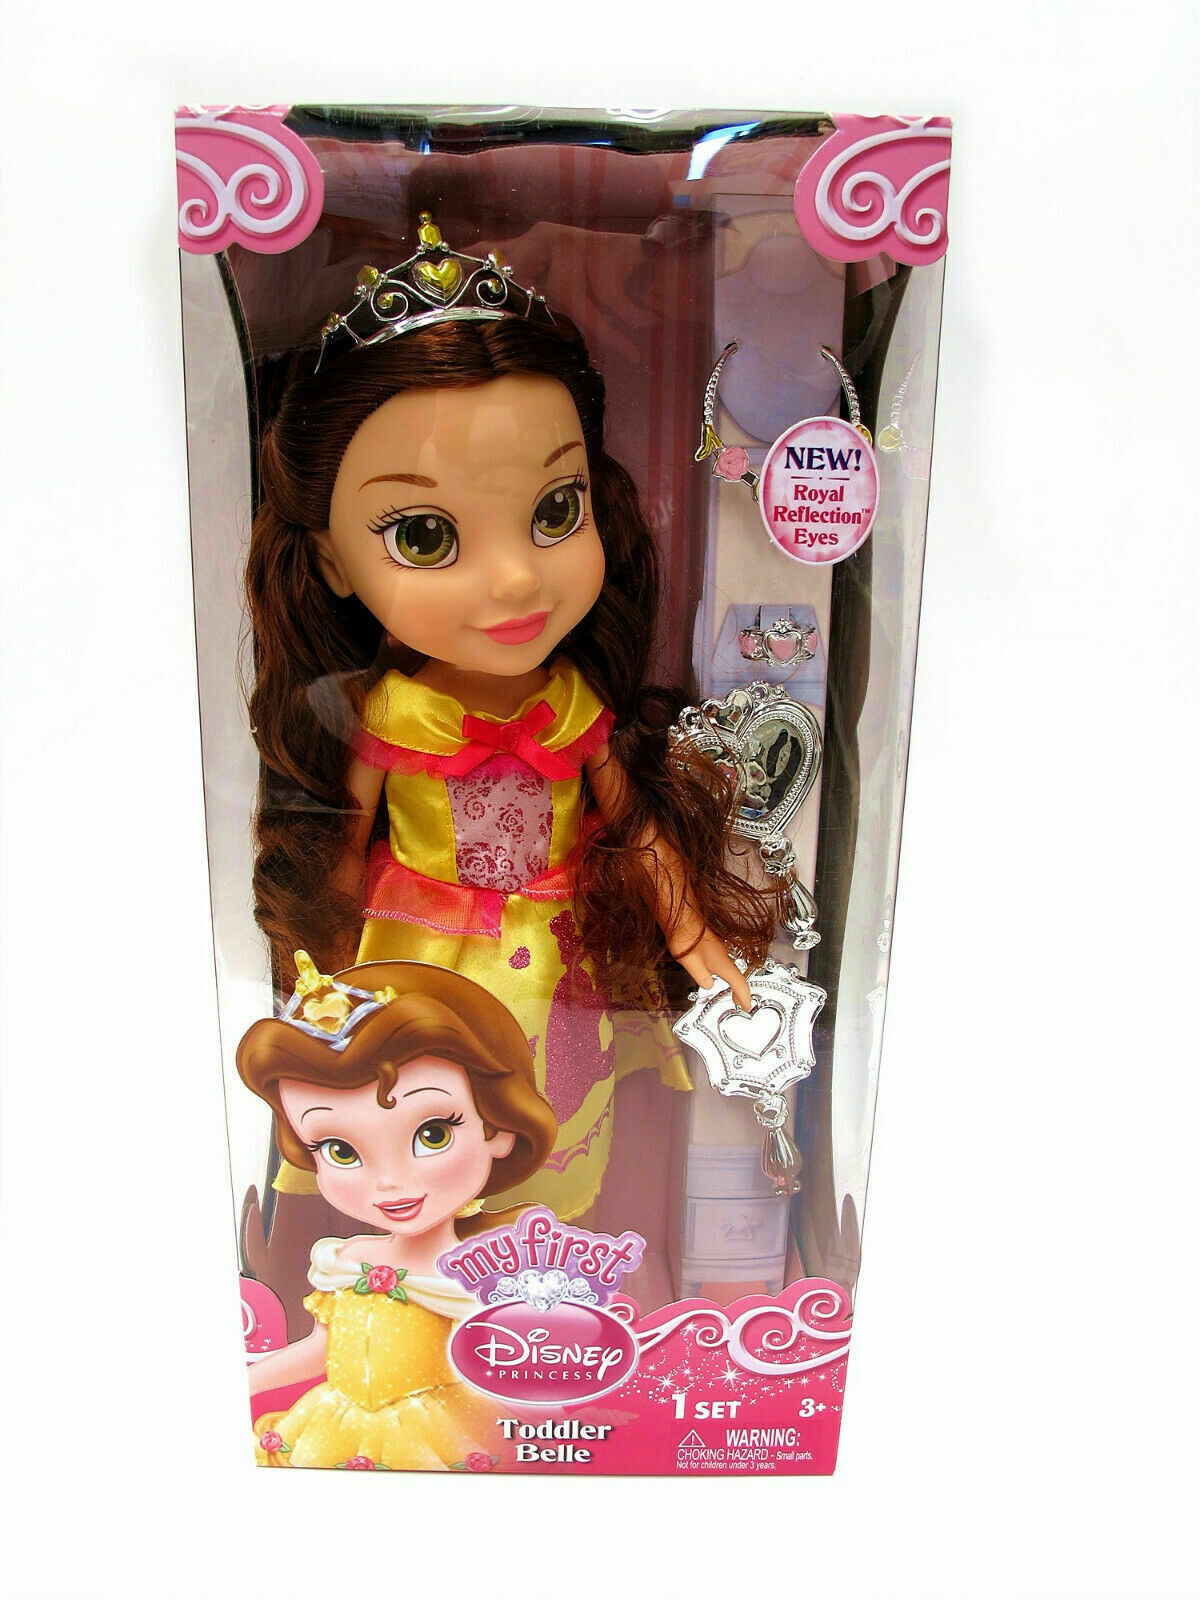 33CM MY FIRST DISNEY PRINCESS TODDLER BELLE ACTION FIGURE DOLL GIRL KID GIFT TOY